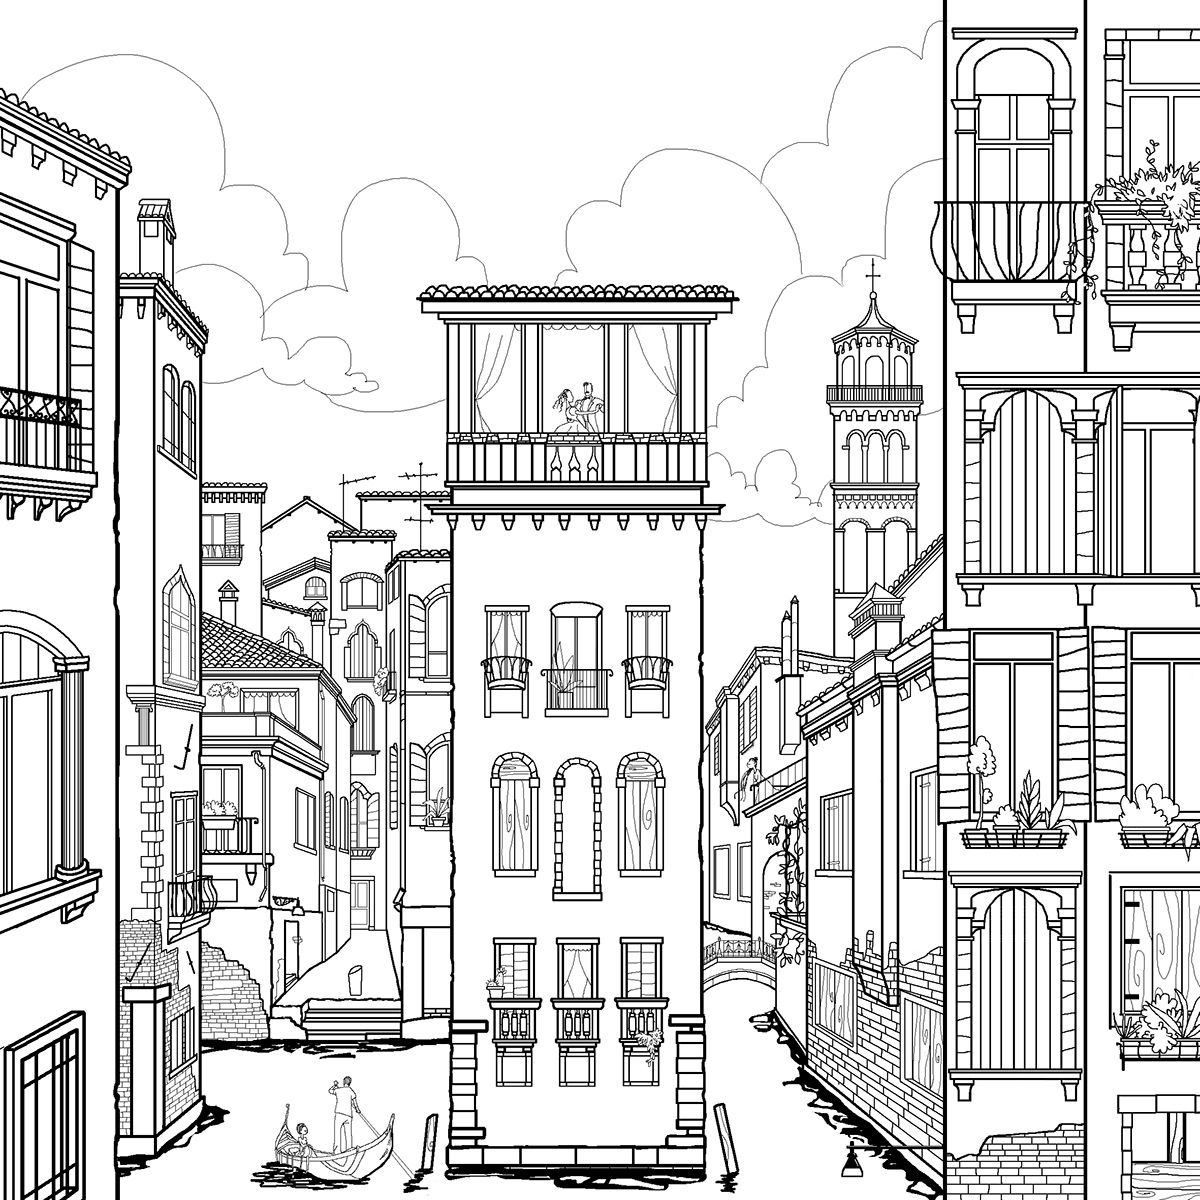 Illustrations For The Zoombook S Project Coloring Book With The Most Beautiful Cities In The